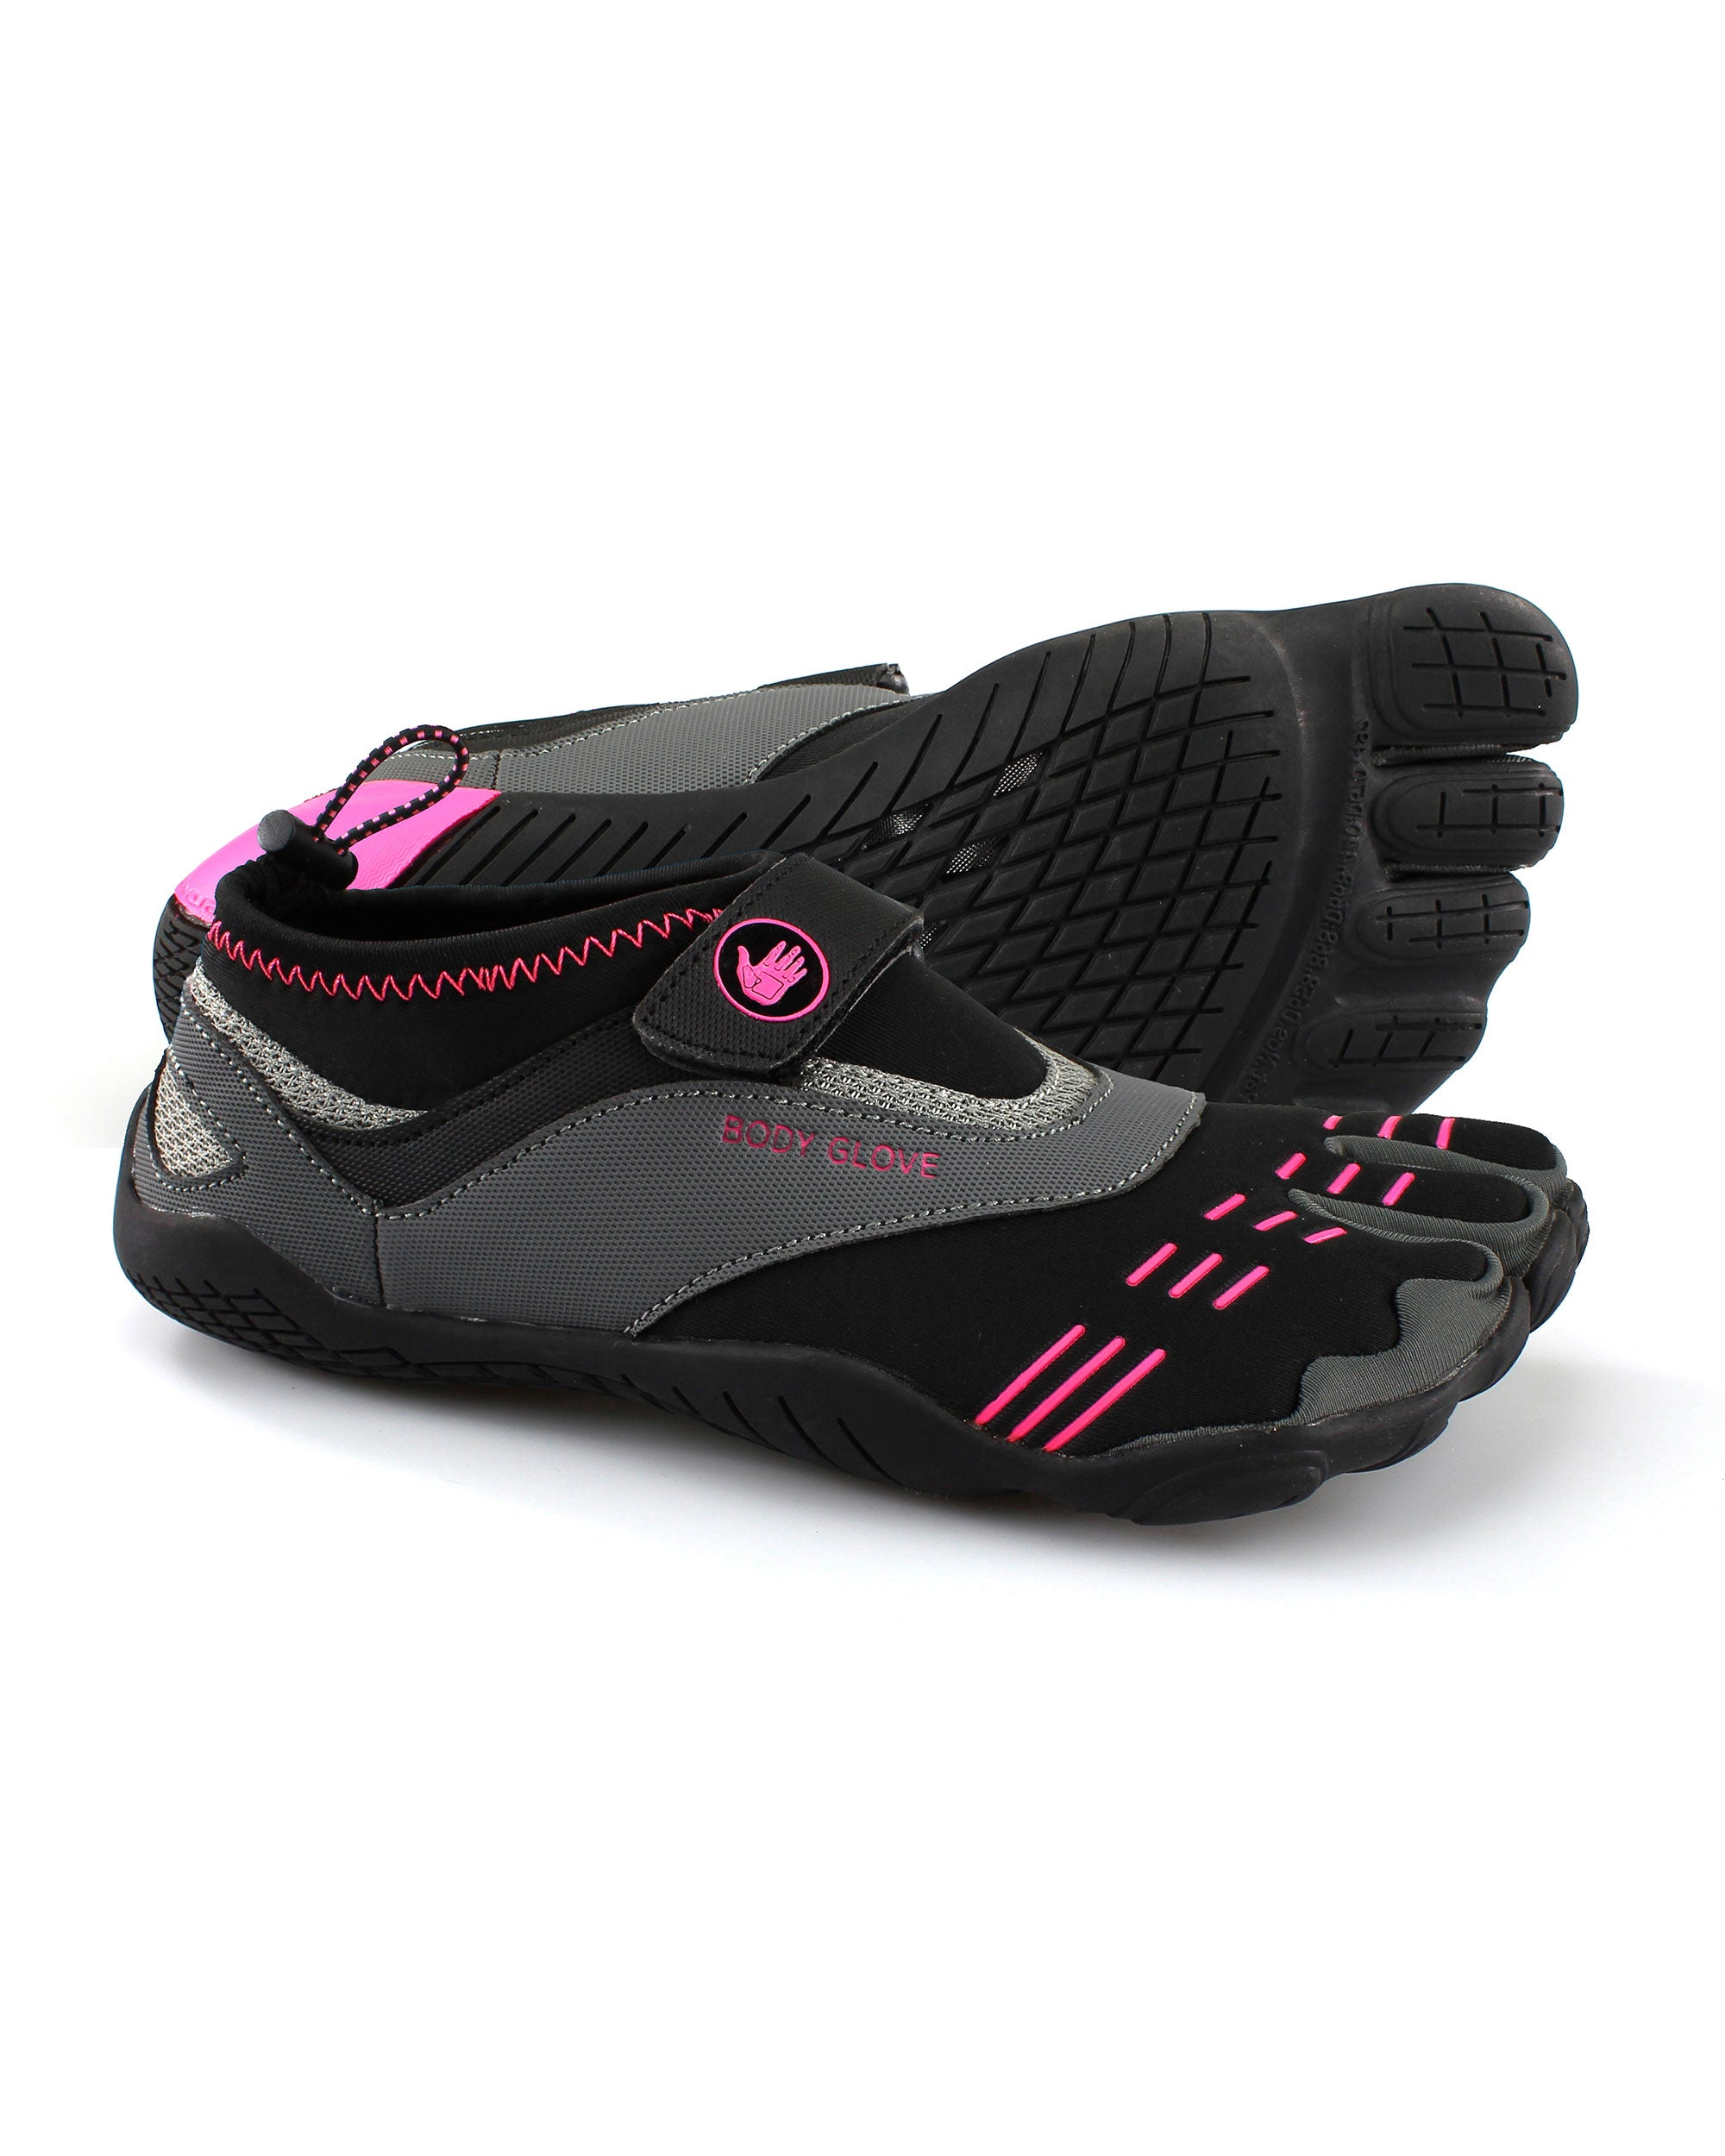 Women's 3T Barefoot Max Water Shoes - Black/Neon Pink